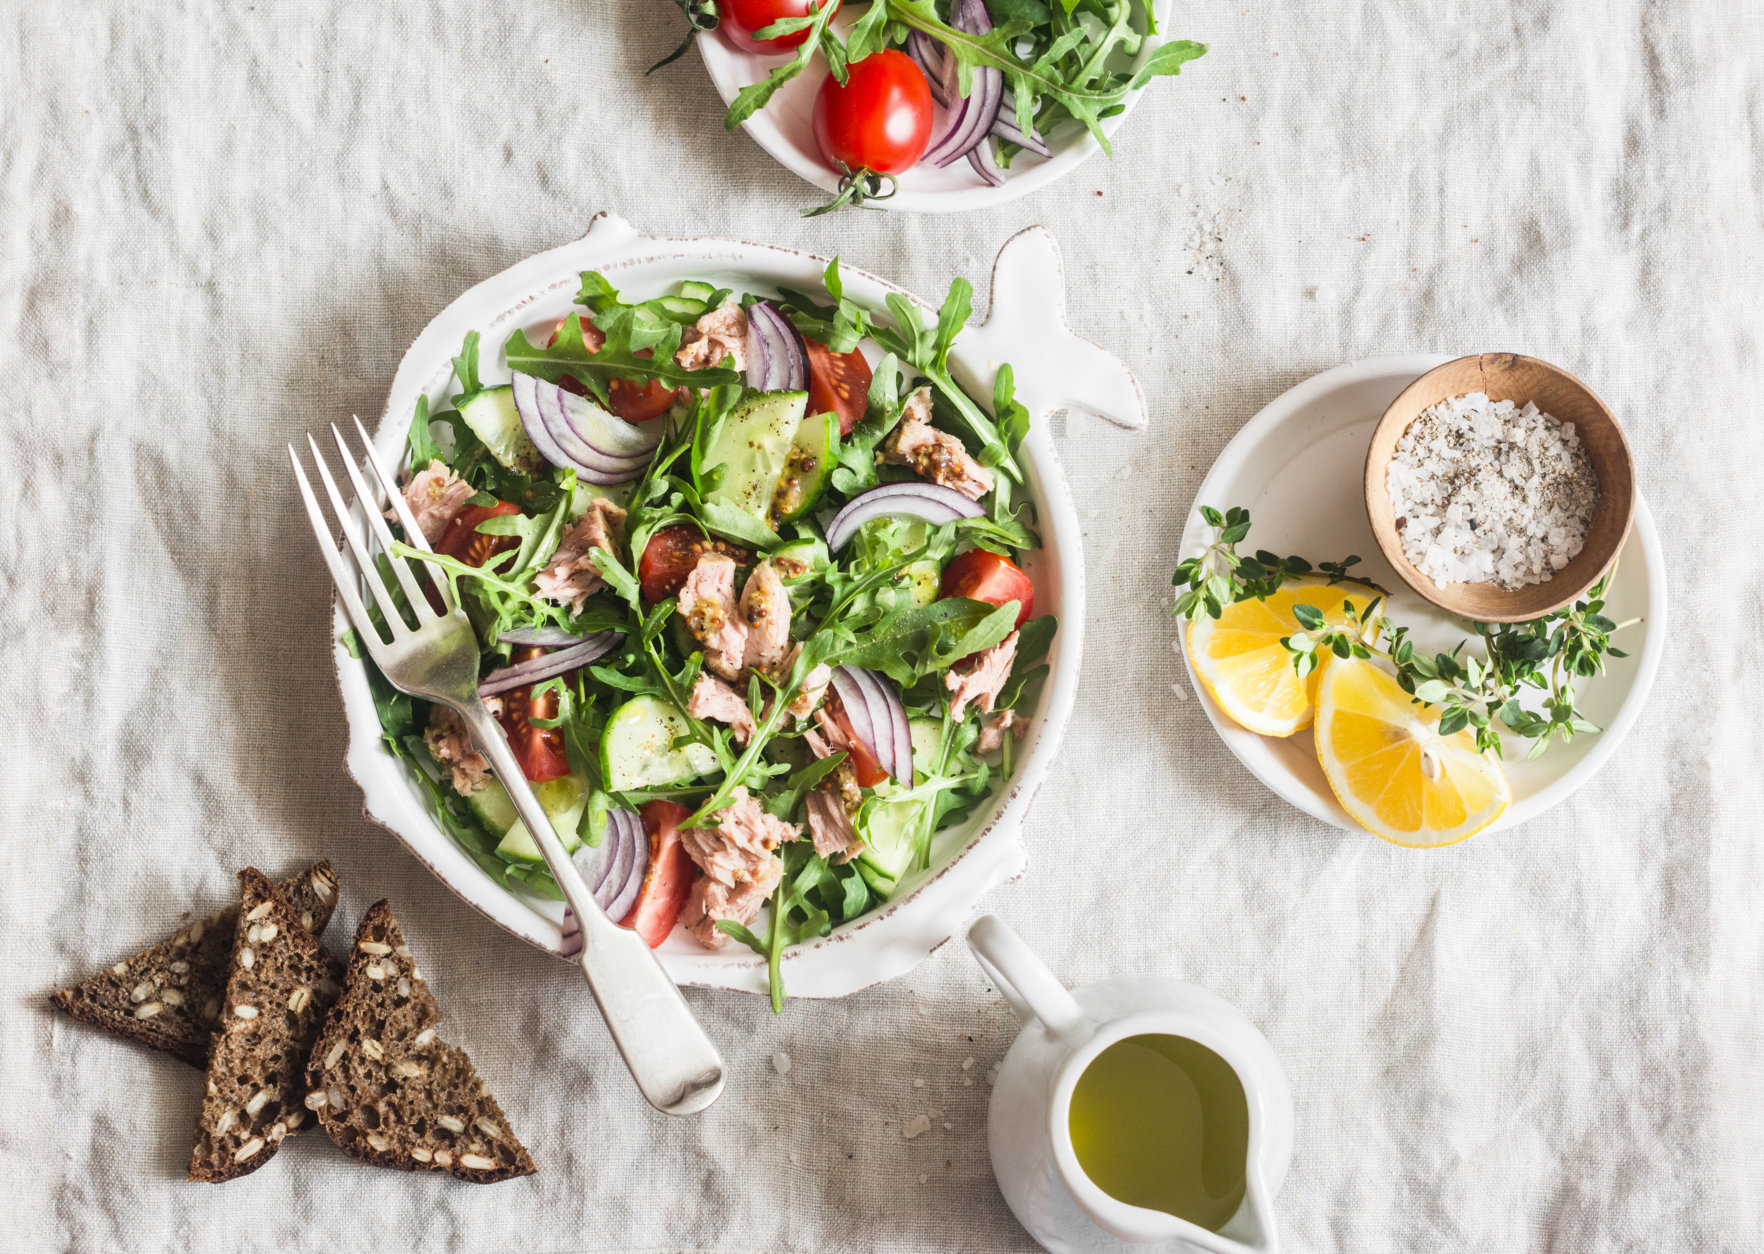 Both the Mediterranean and DASH diets are consistently ranked at the top of U.S. News and World Report's annual diet rankings. (Getty Images)